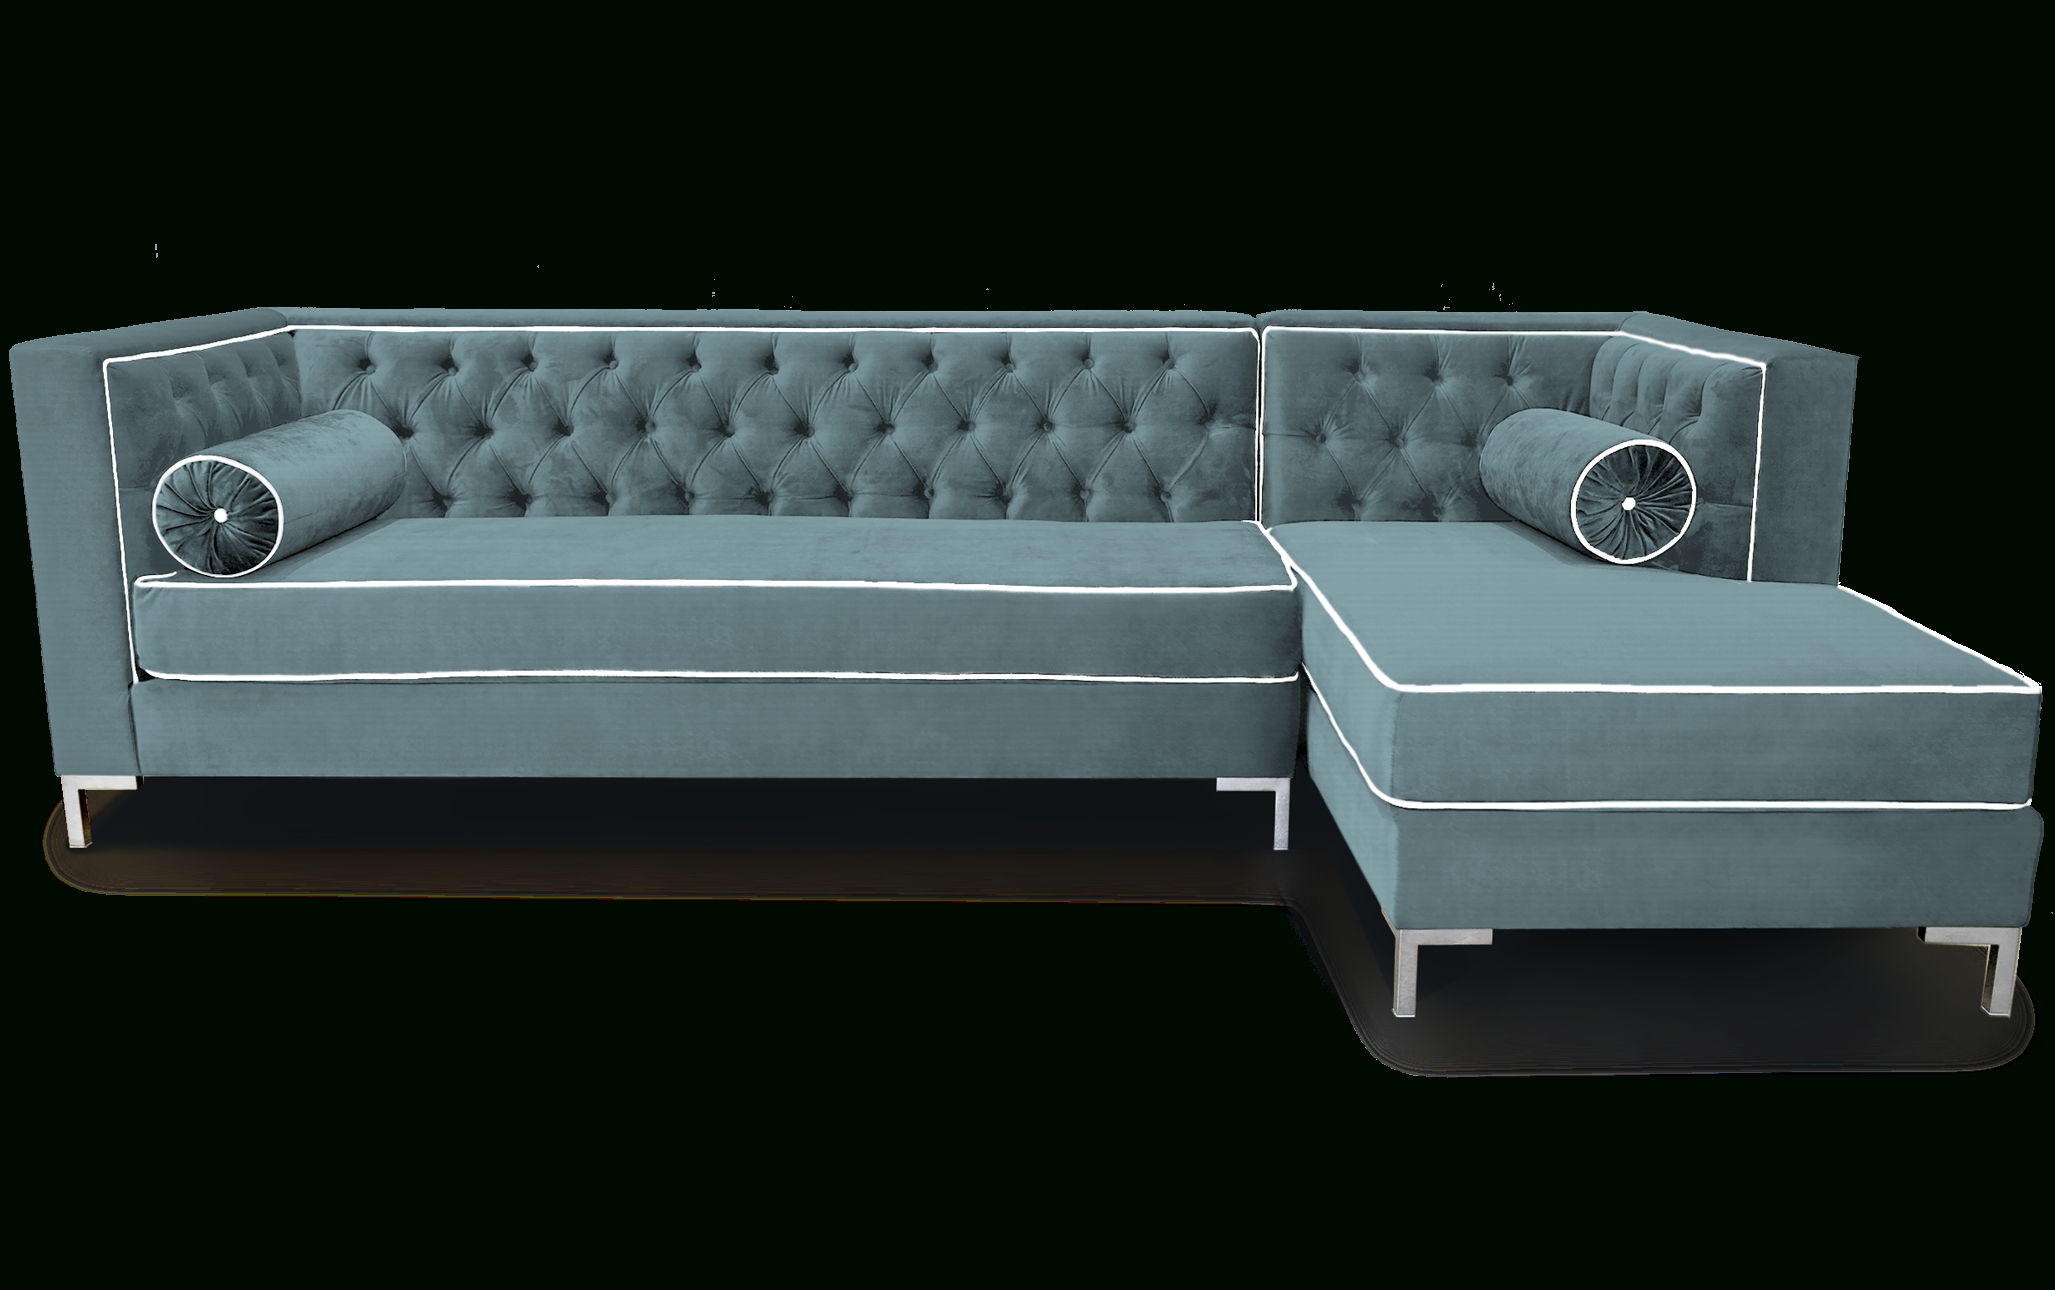 Gray Color Modern Tufted Sectional Sleeper Sofa With Pillow And within Tufted Sleeper Sofas (Image 7 of 15)